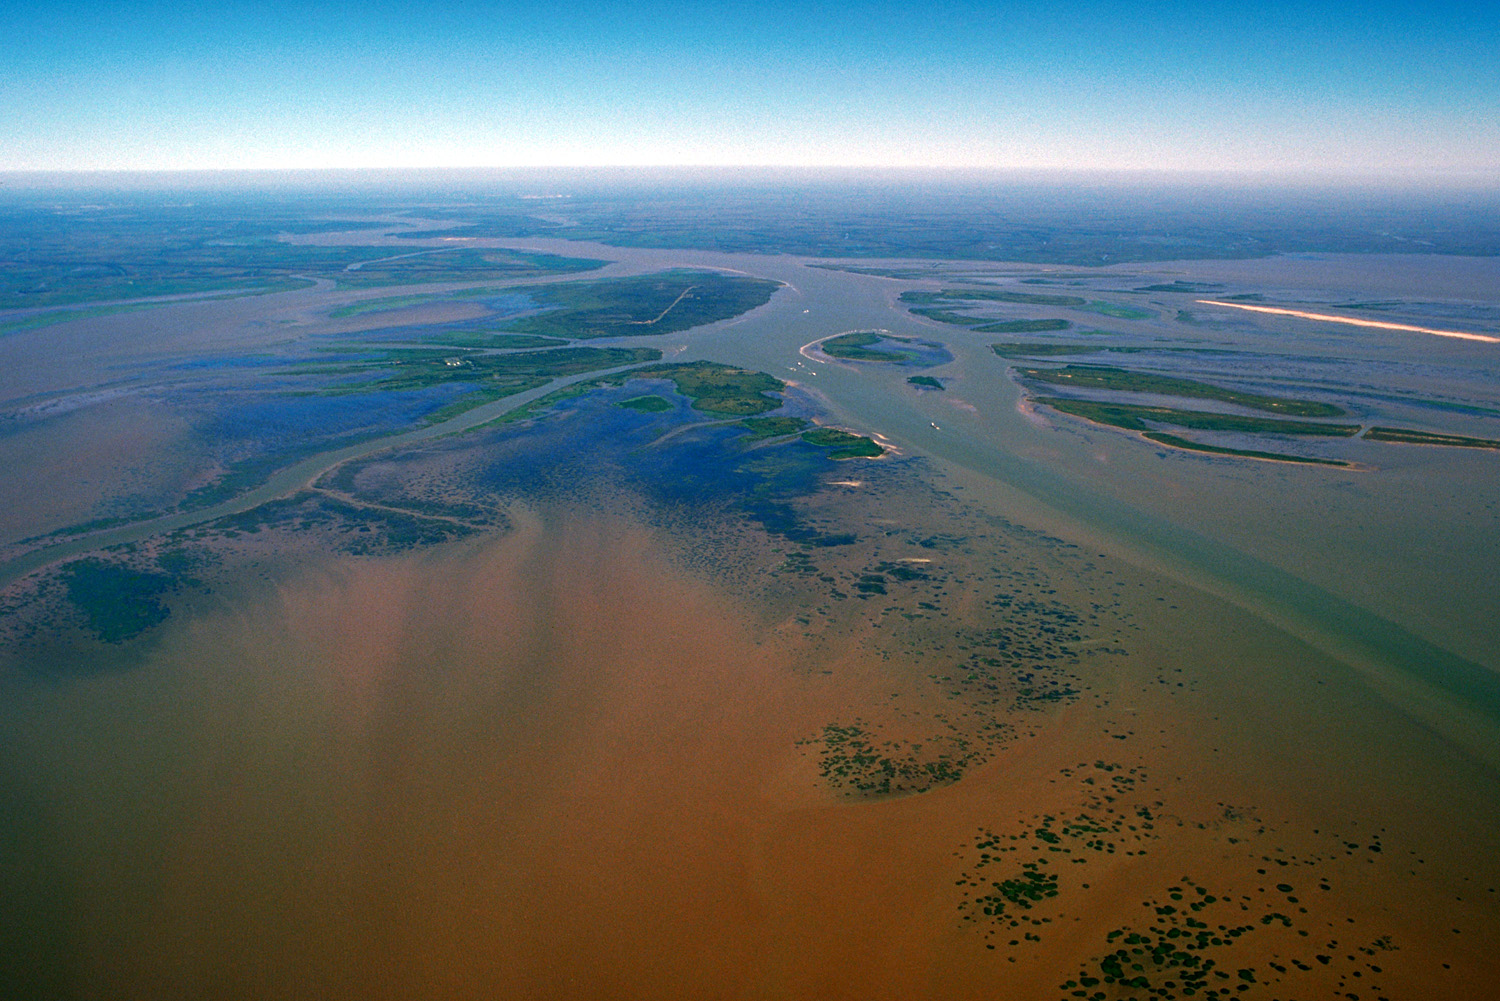 http://upload.wikimedia.org/wikipedia/commons/3/35/Atchafalaya_River_delta.jpg